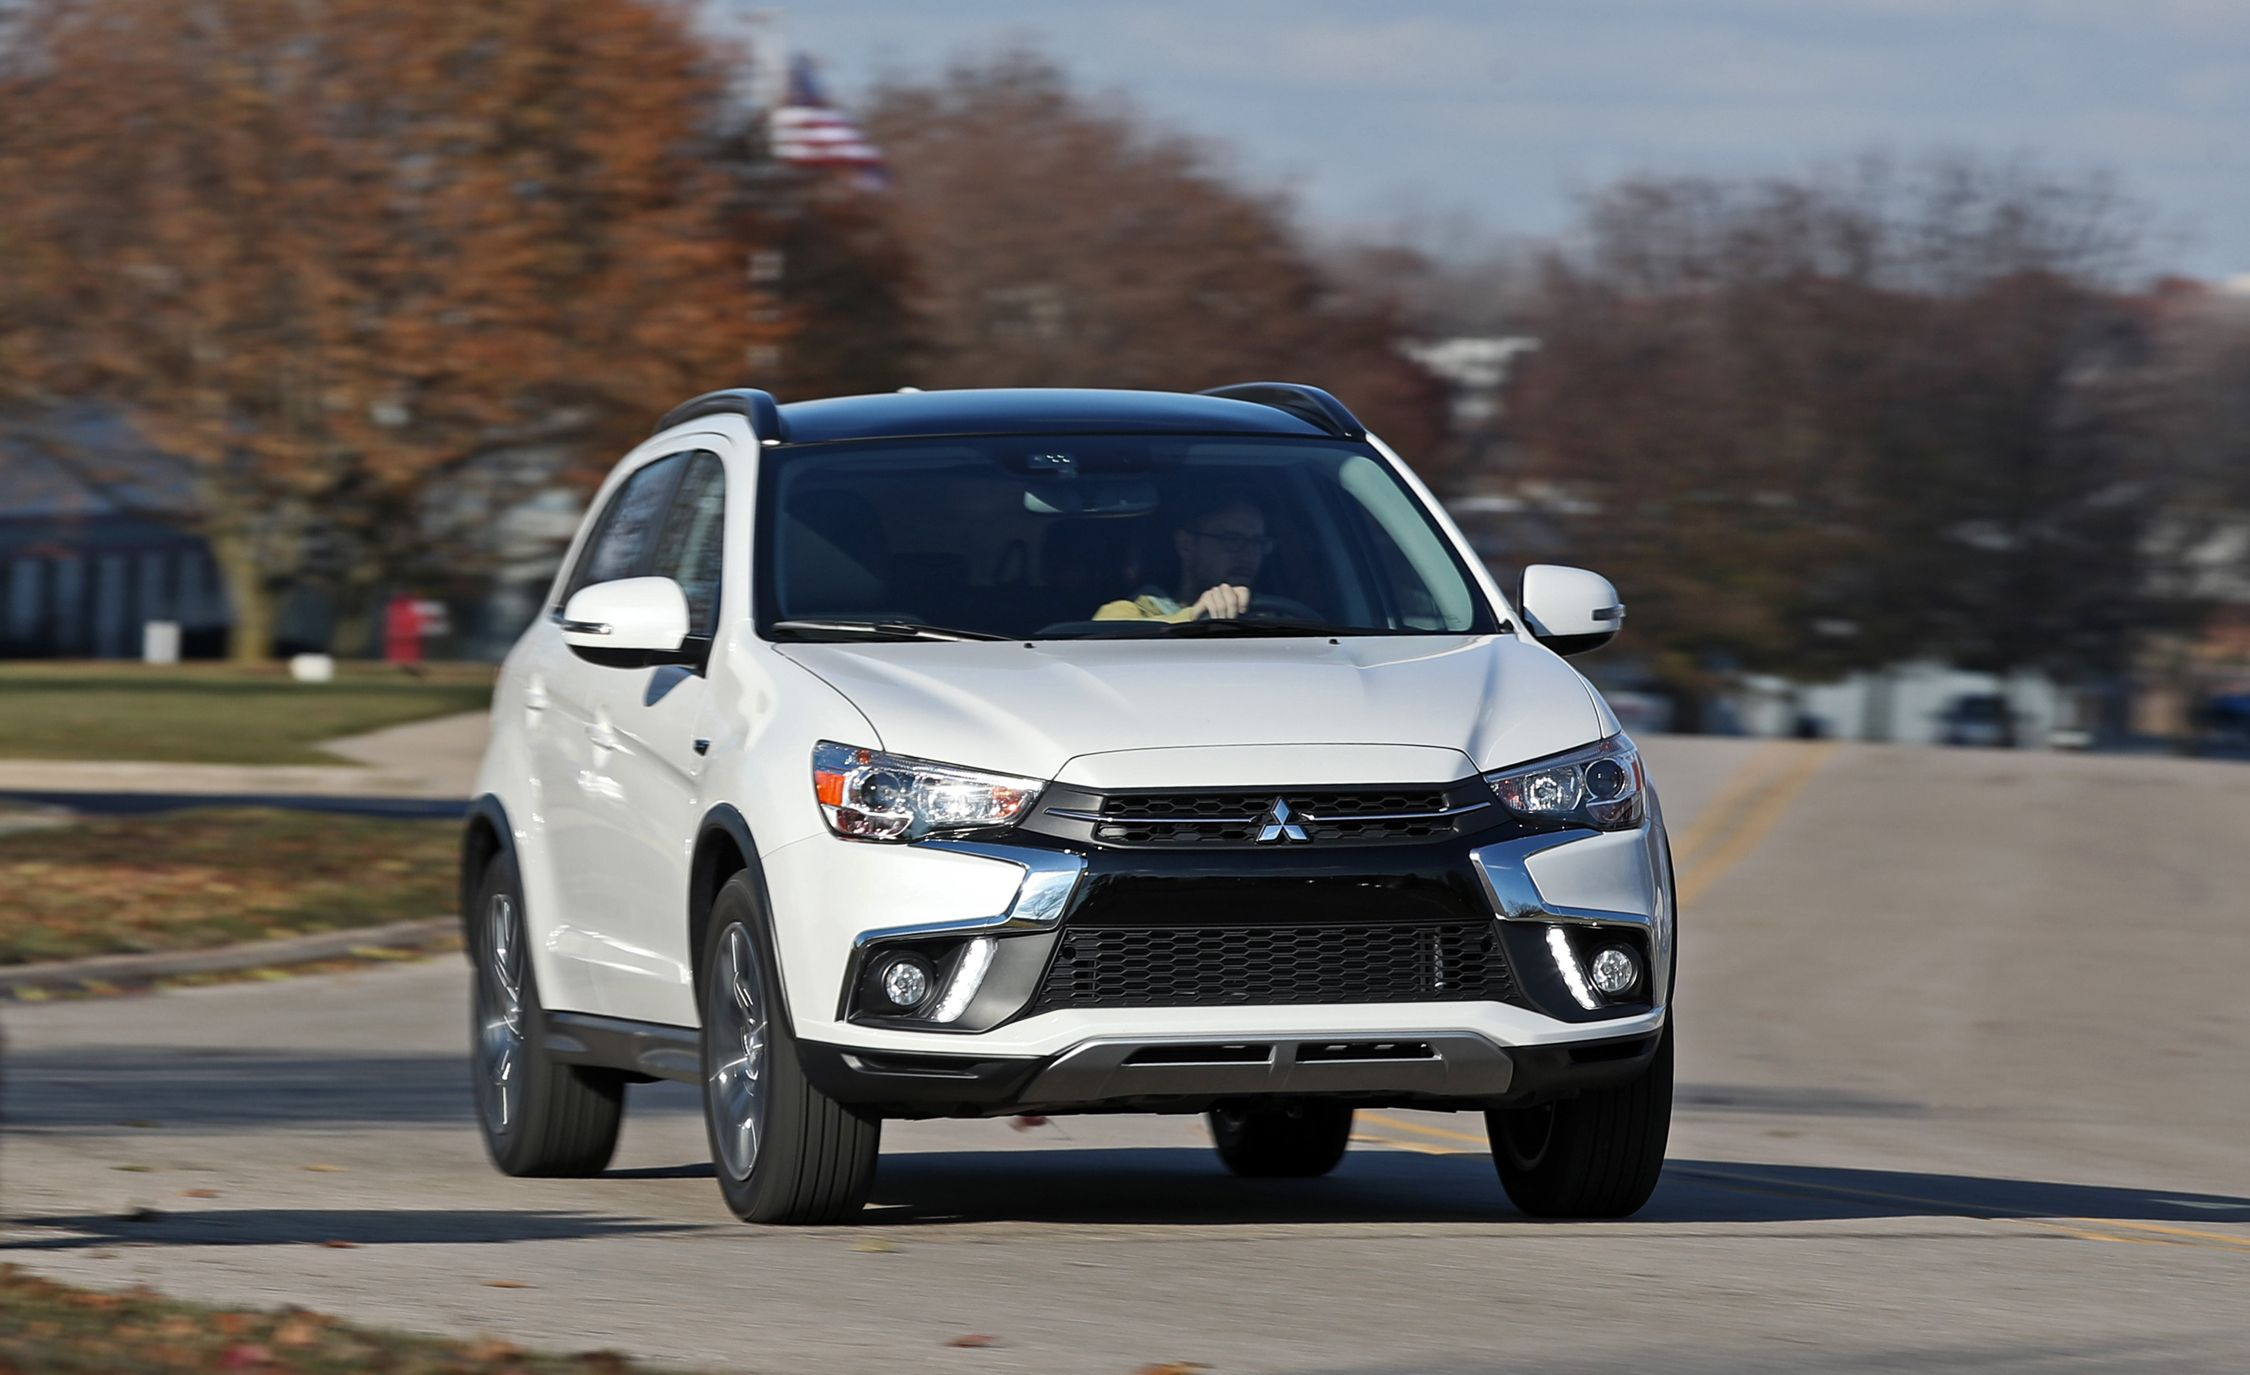 2018 Mitsubishi Outlander Sport | MMCS Infotainment Review | Car and Driver